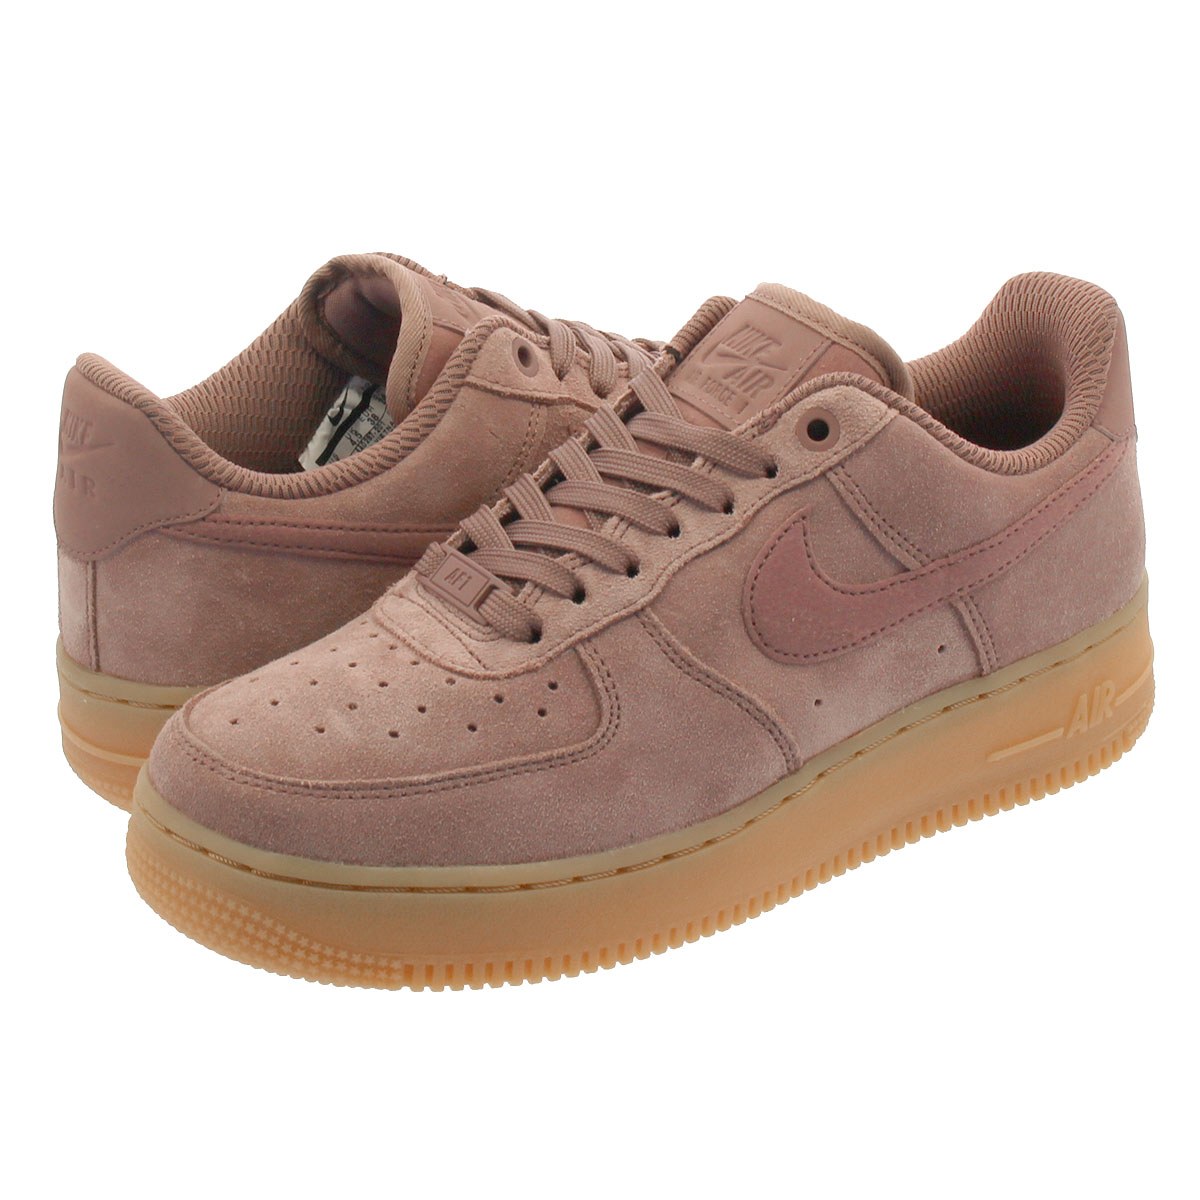 NIKE WMNS AIR FORCE 1 '07 SE Nike women air force '07 SE SMOKEY MAUVESMOKEY MAUVE aa0287 201